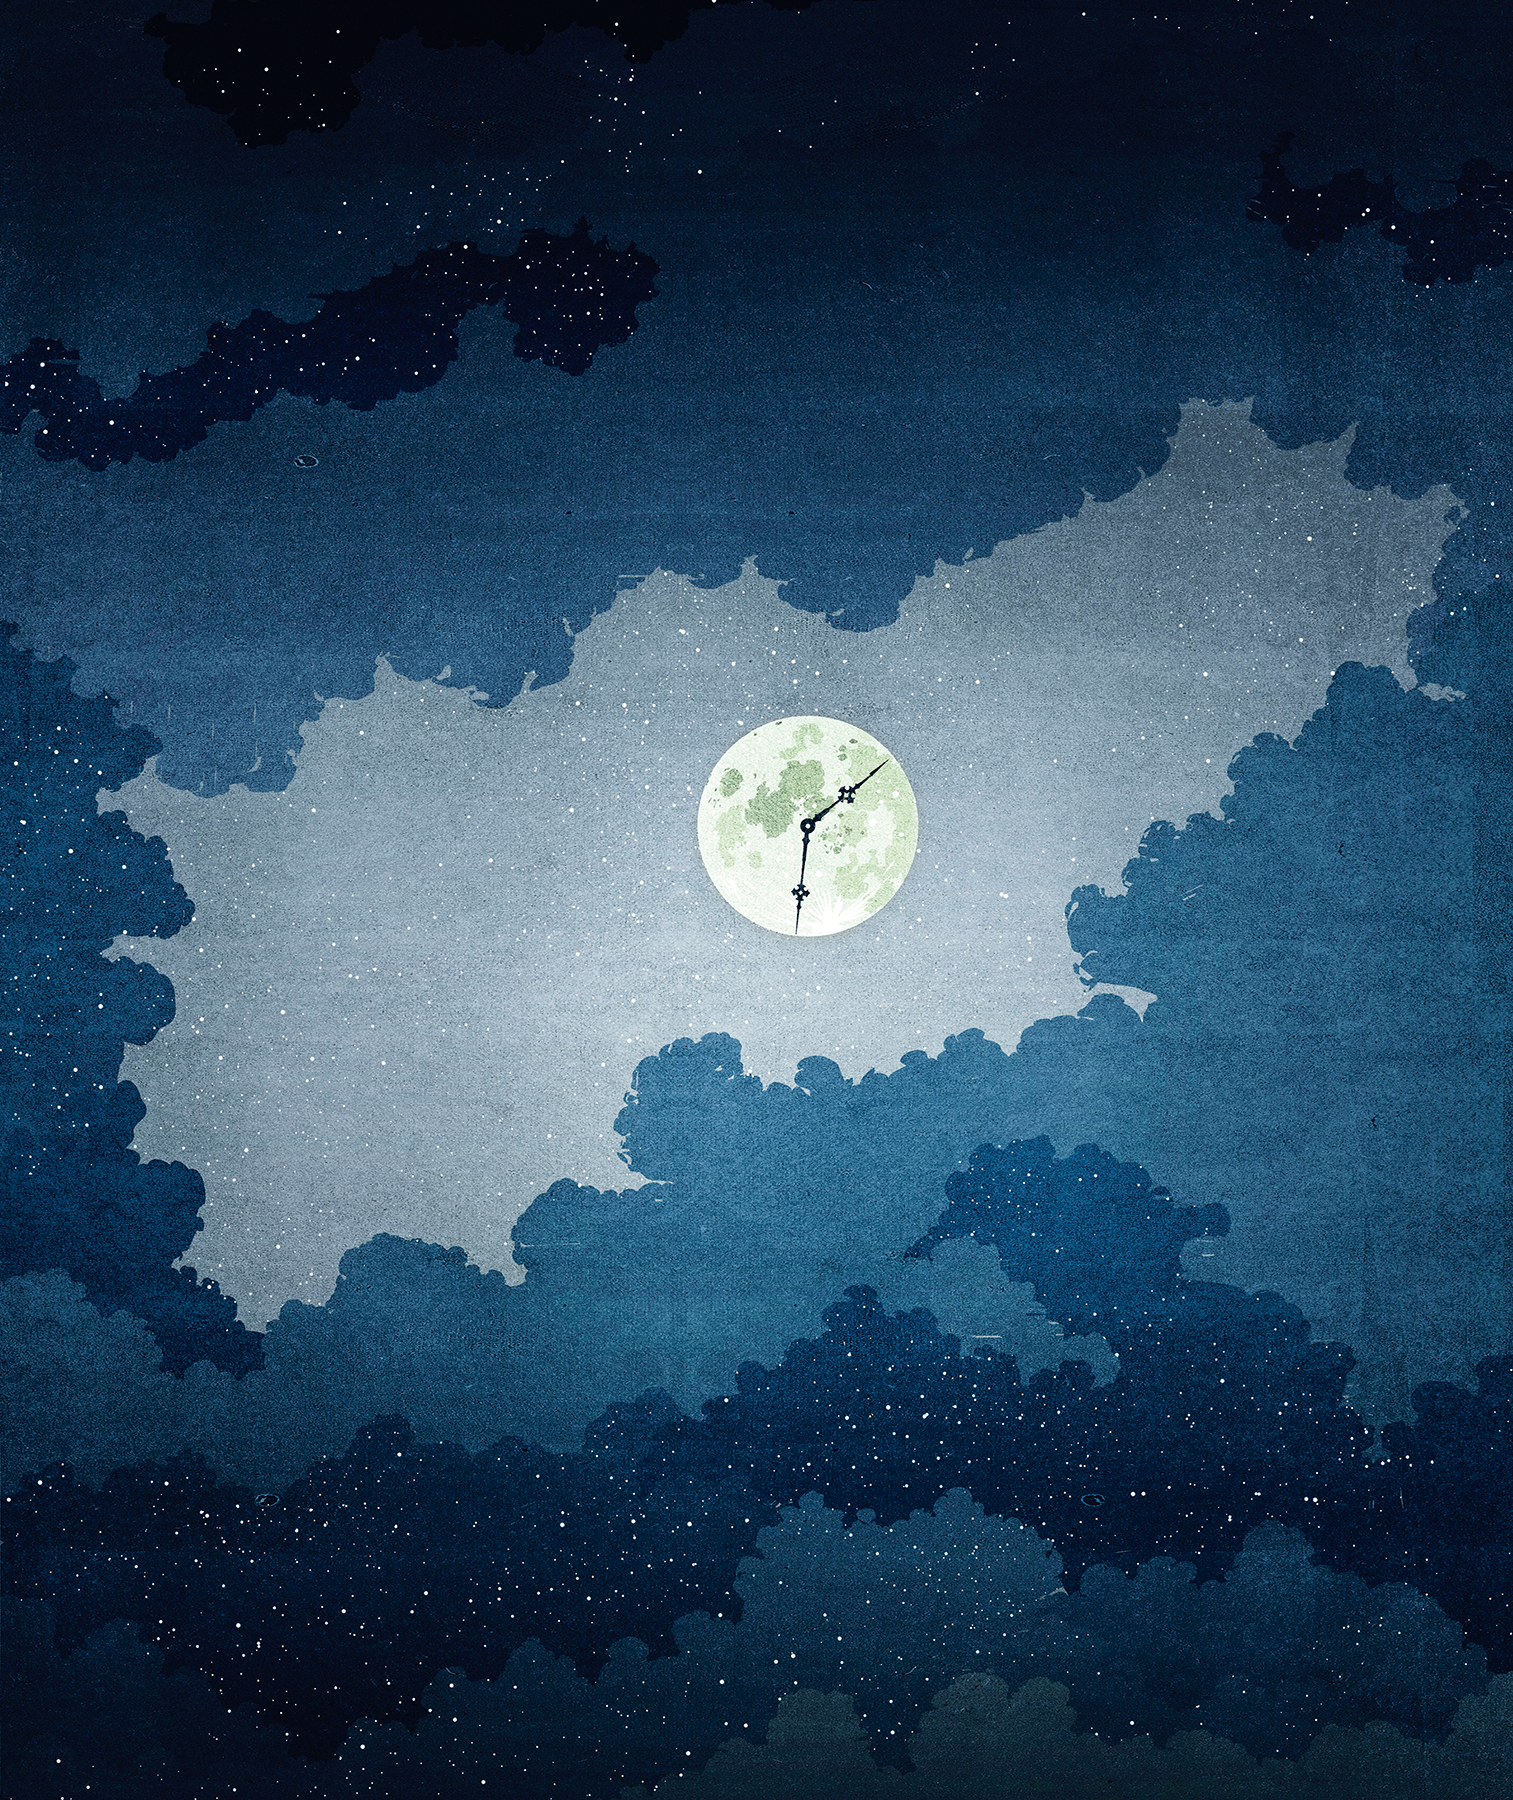 Illustration: moon with clock face